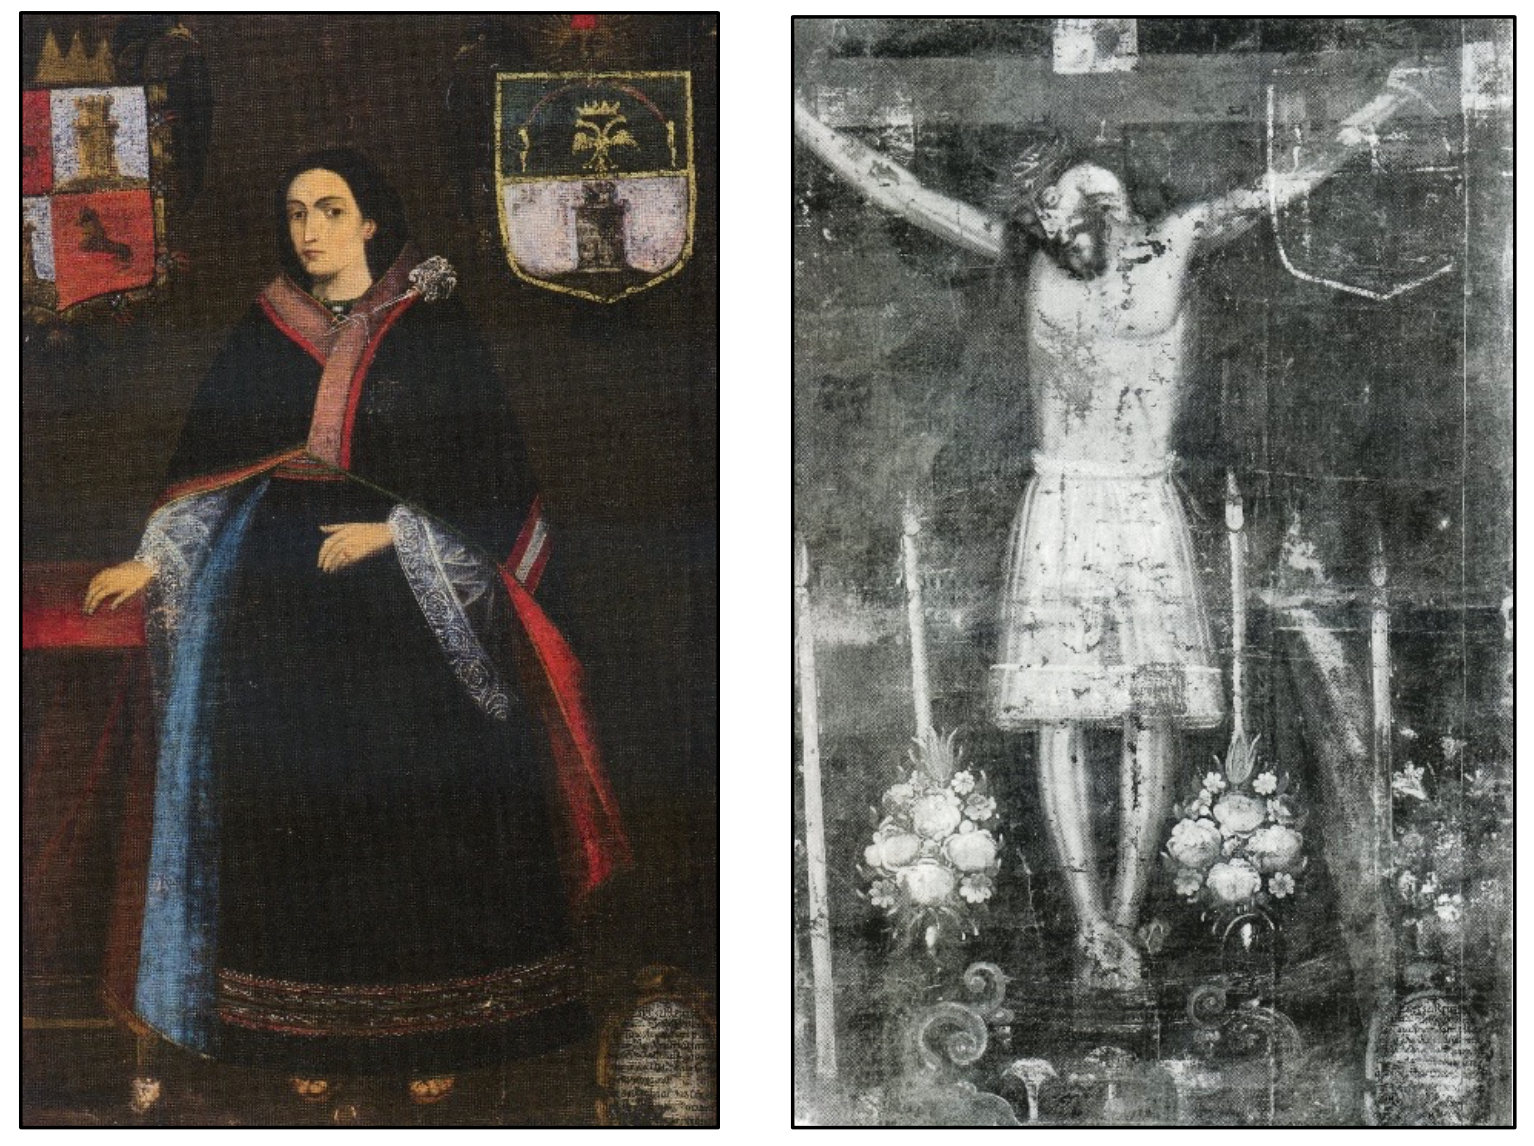 On the left, a painting of Manuela Tupa Amaro. On the right, a depiction of Christ on the cross.